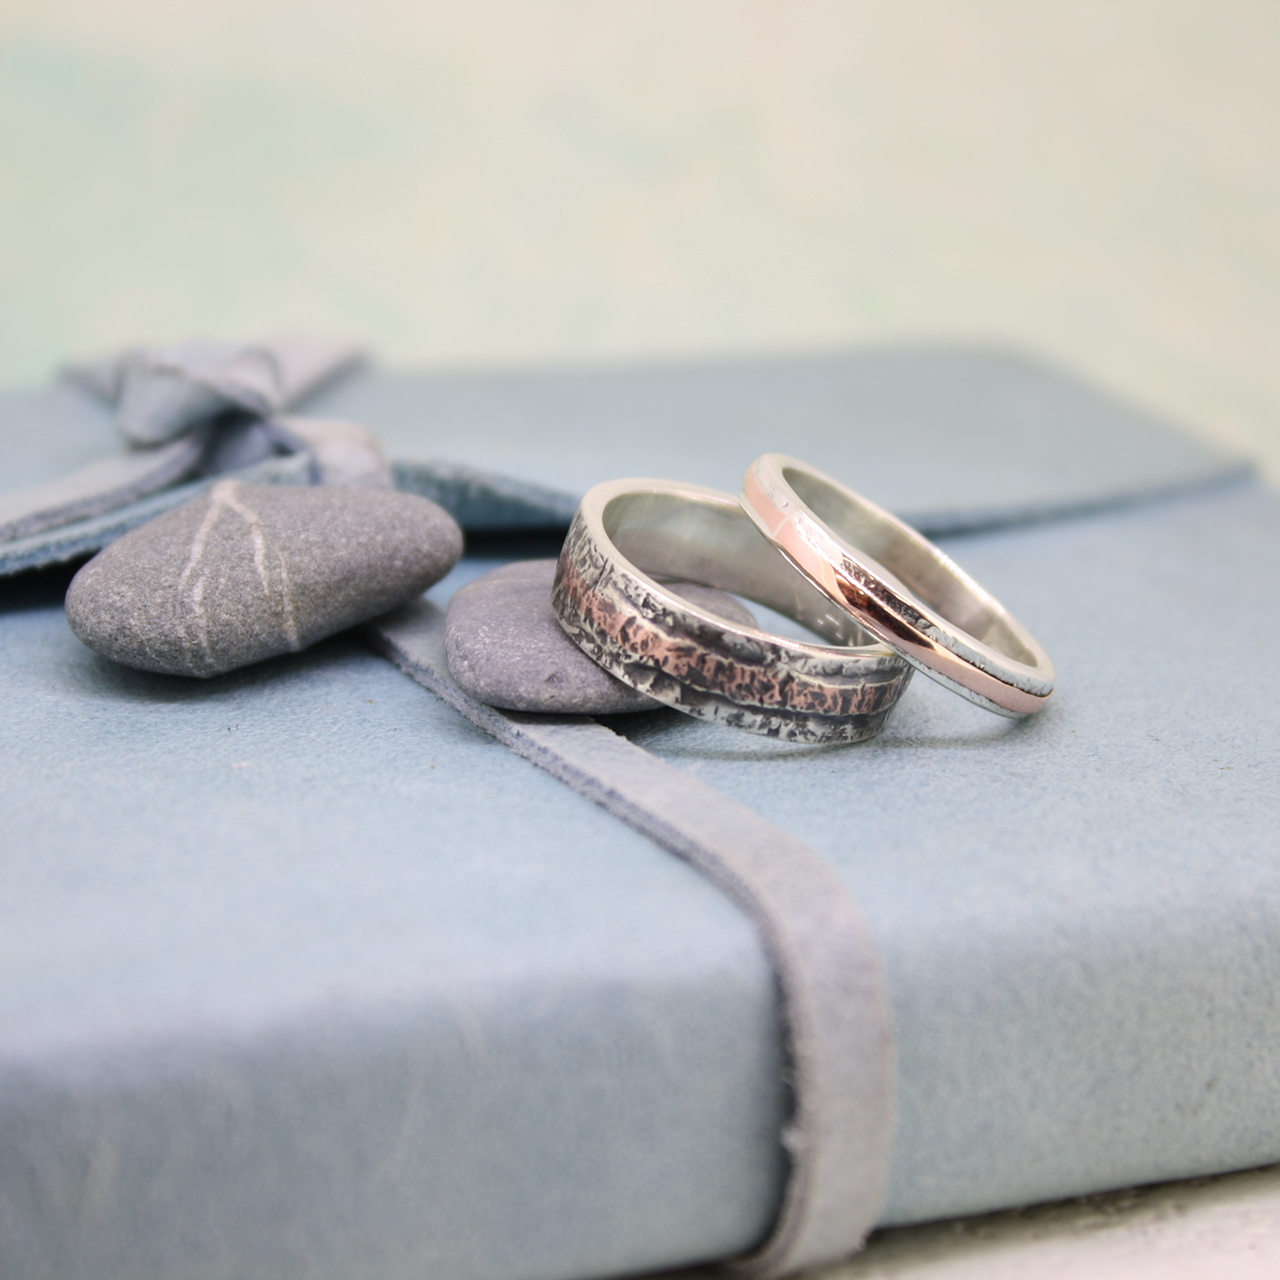 Cornish wedding rings